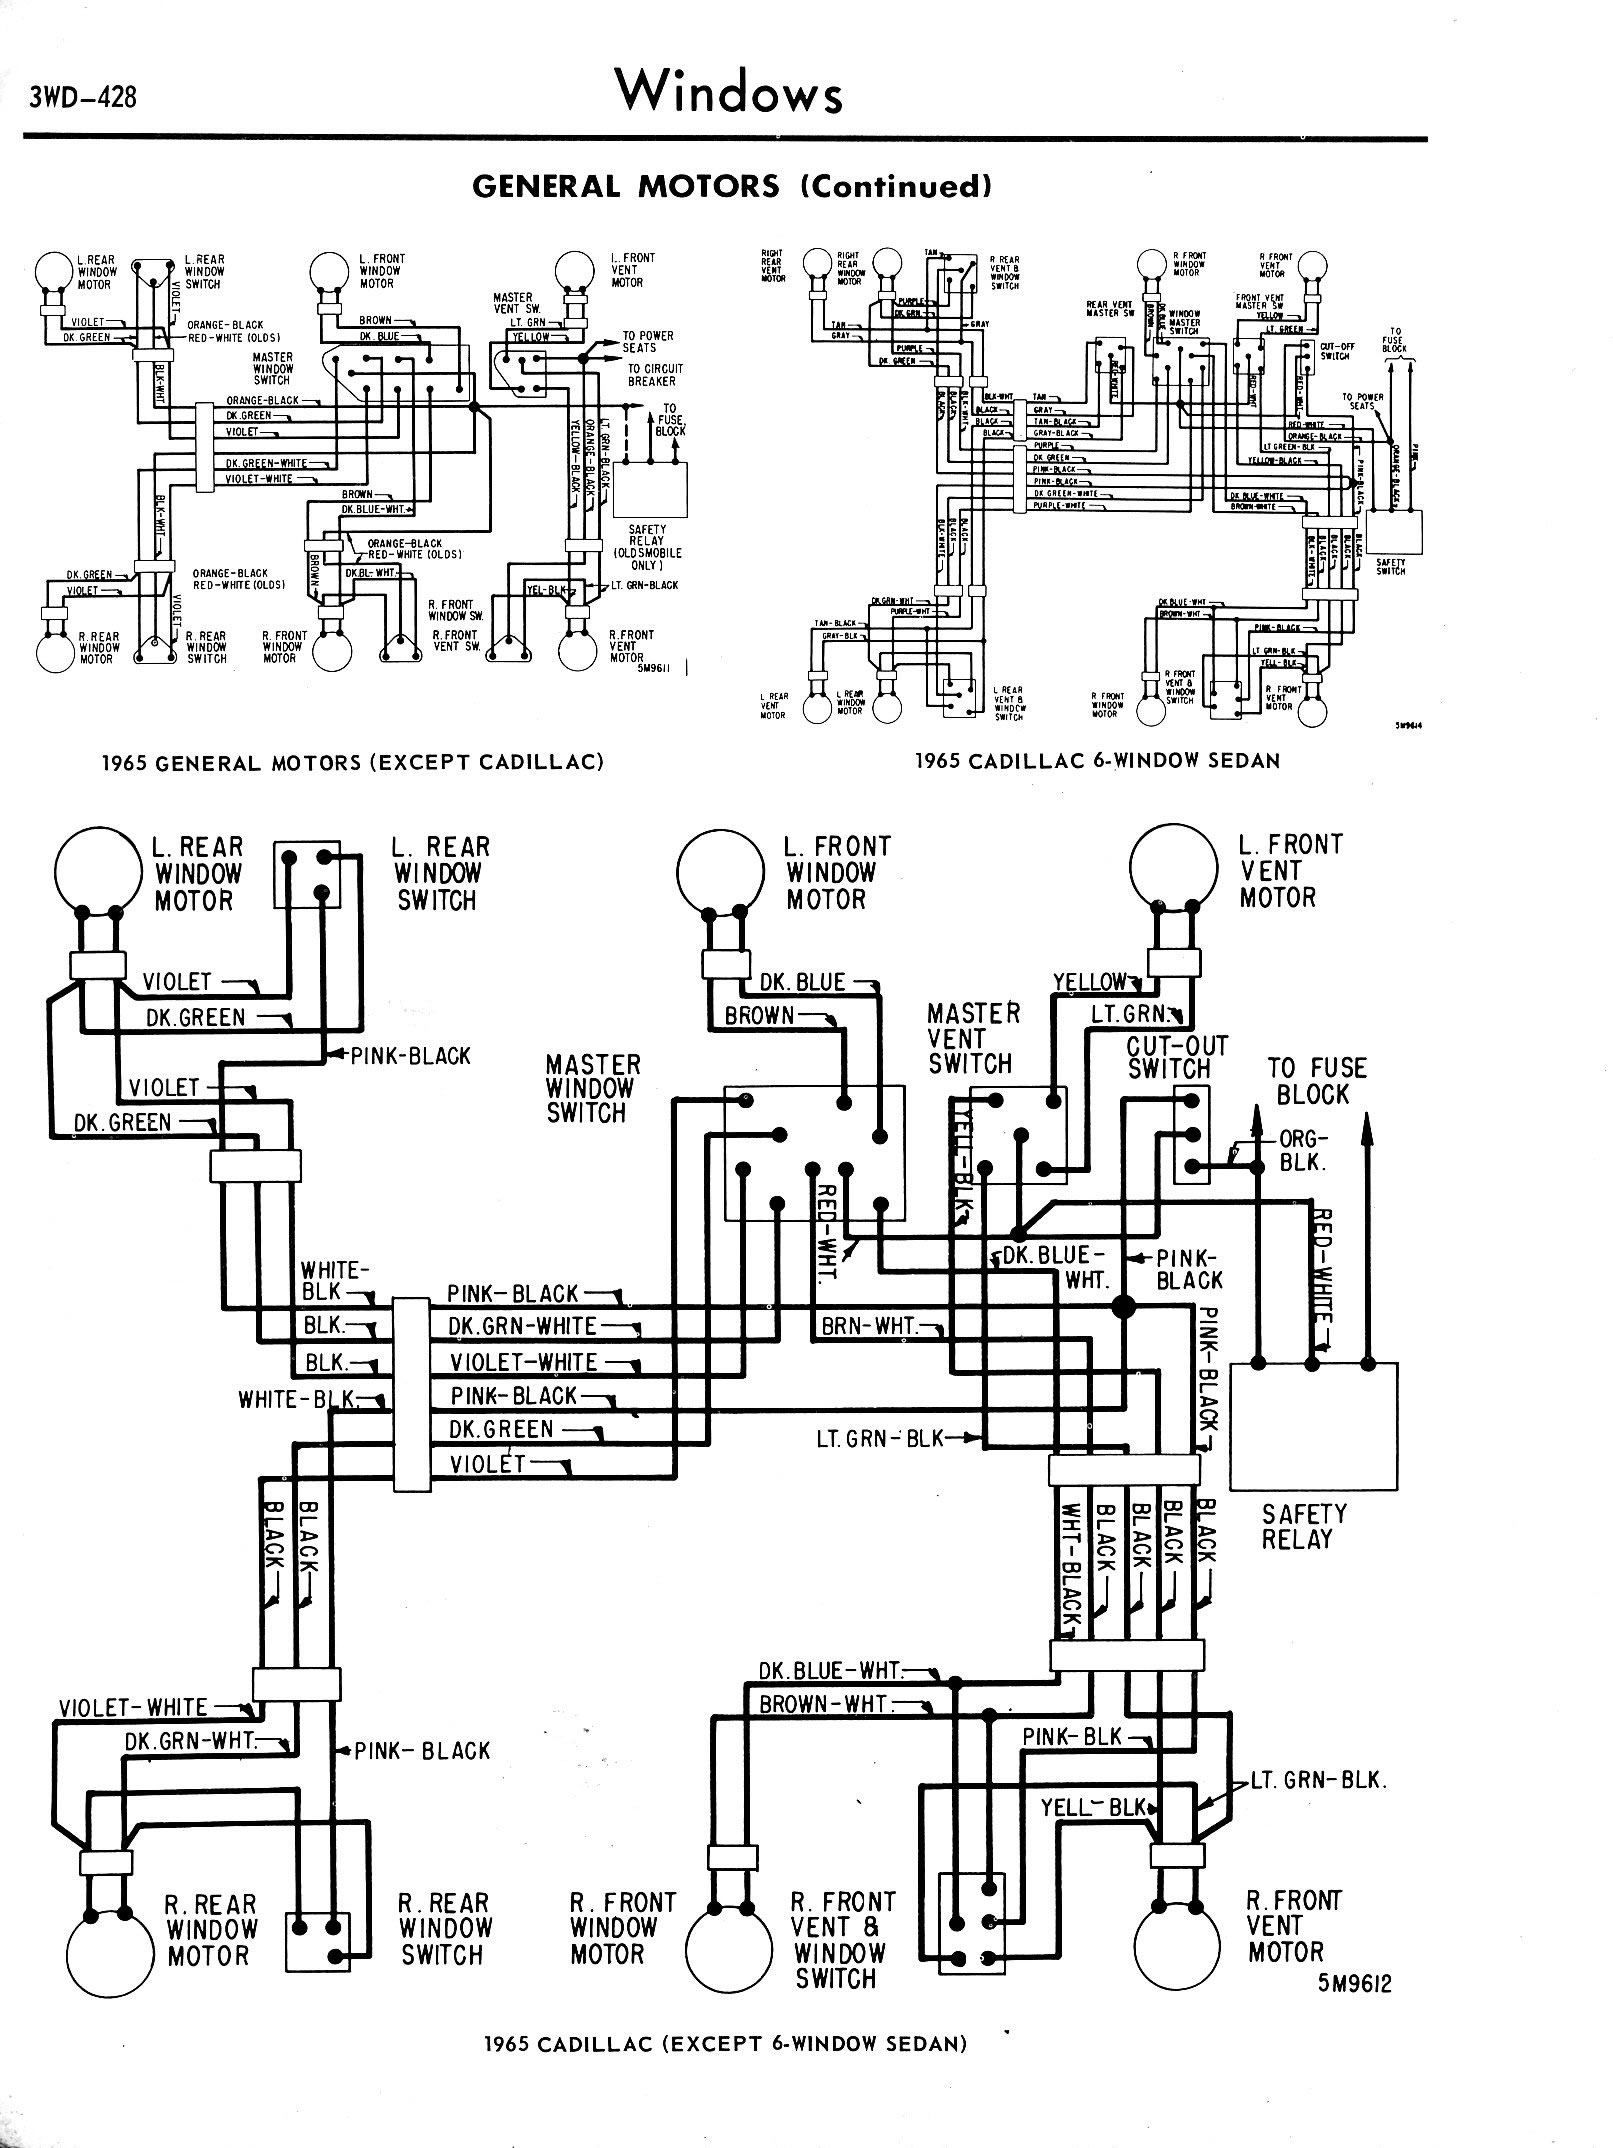 3WD 428_jpg chevy diagrams general motors wiring diagrams at alyssarenee.co